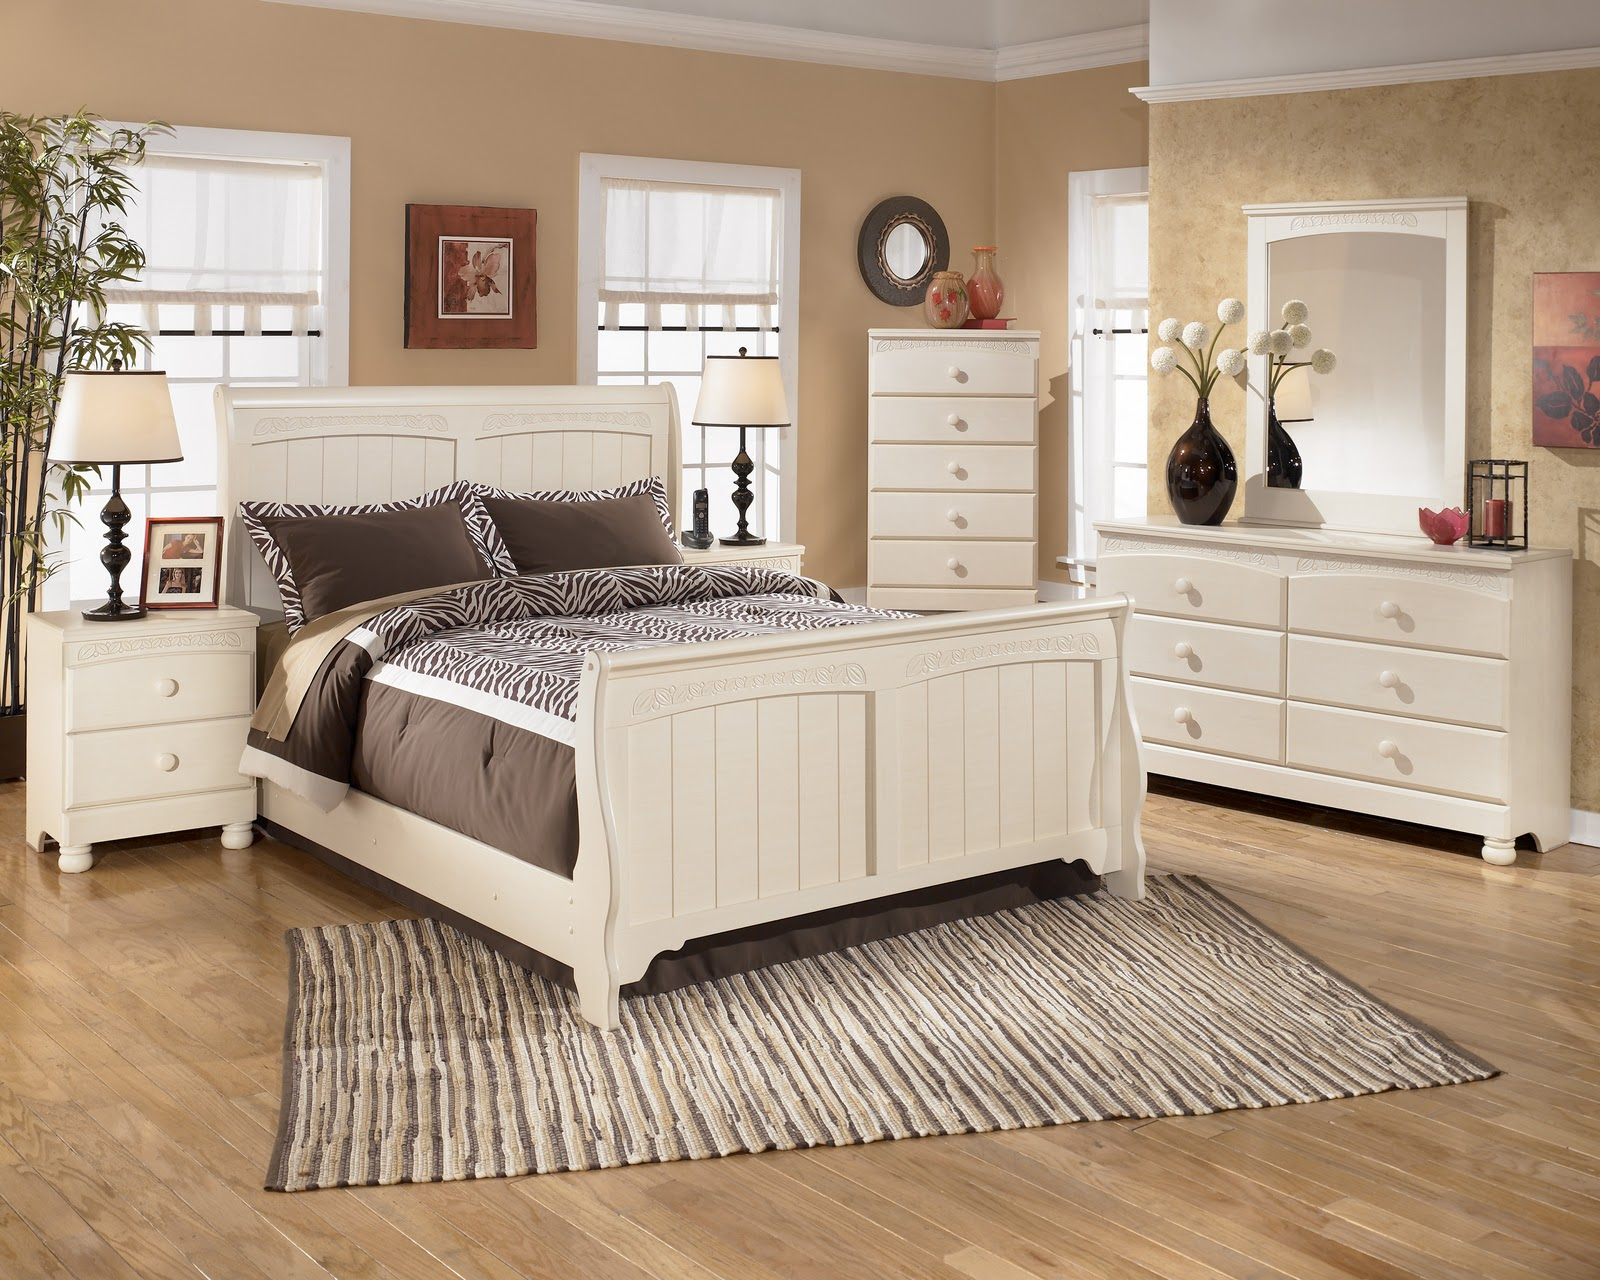 Bedroom Furniture Discounts November 2010